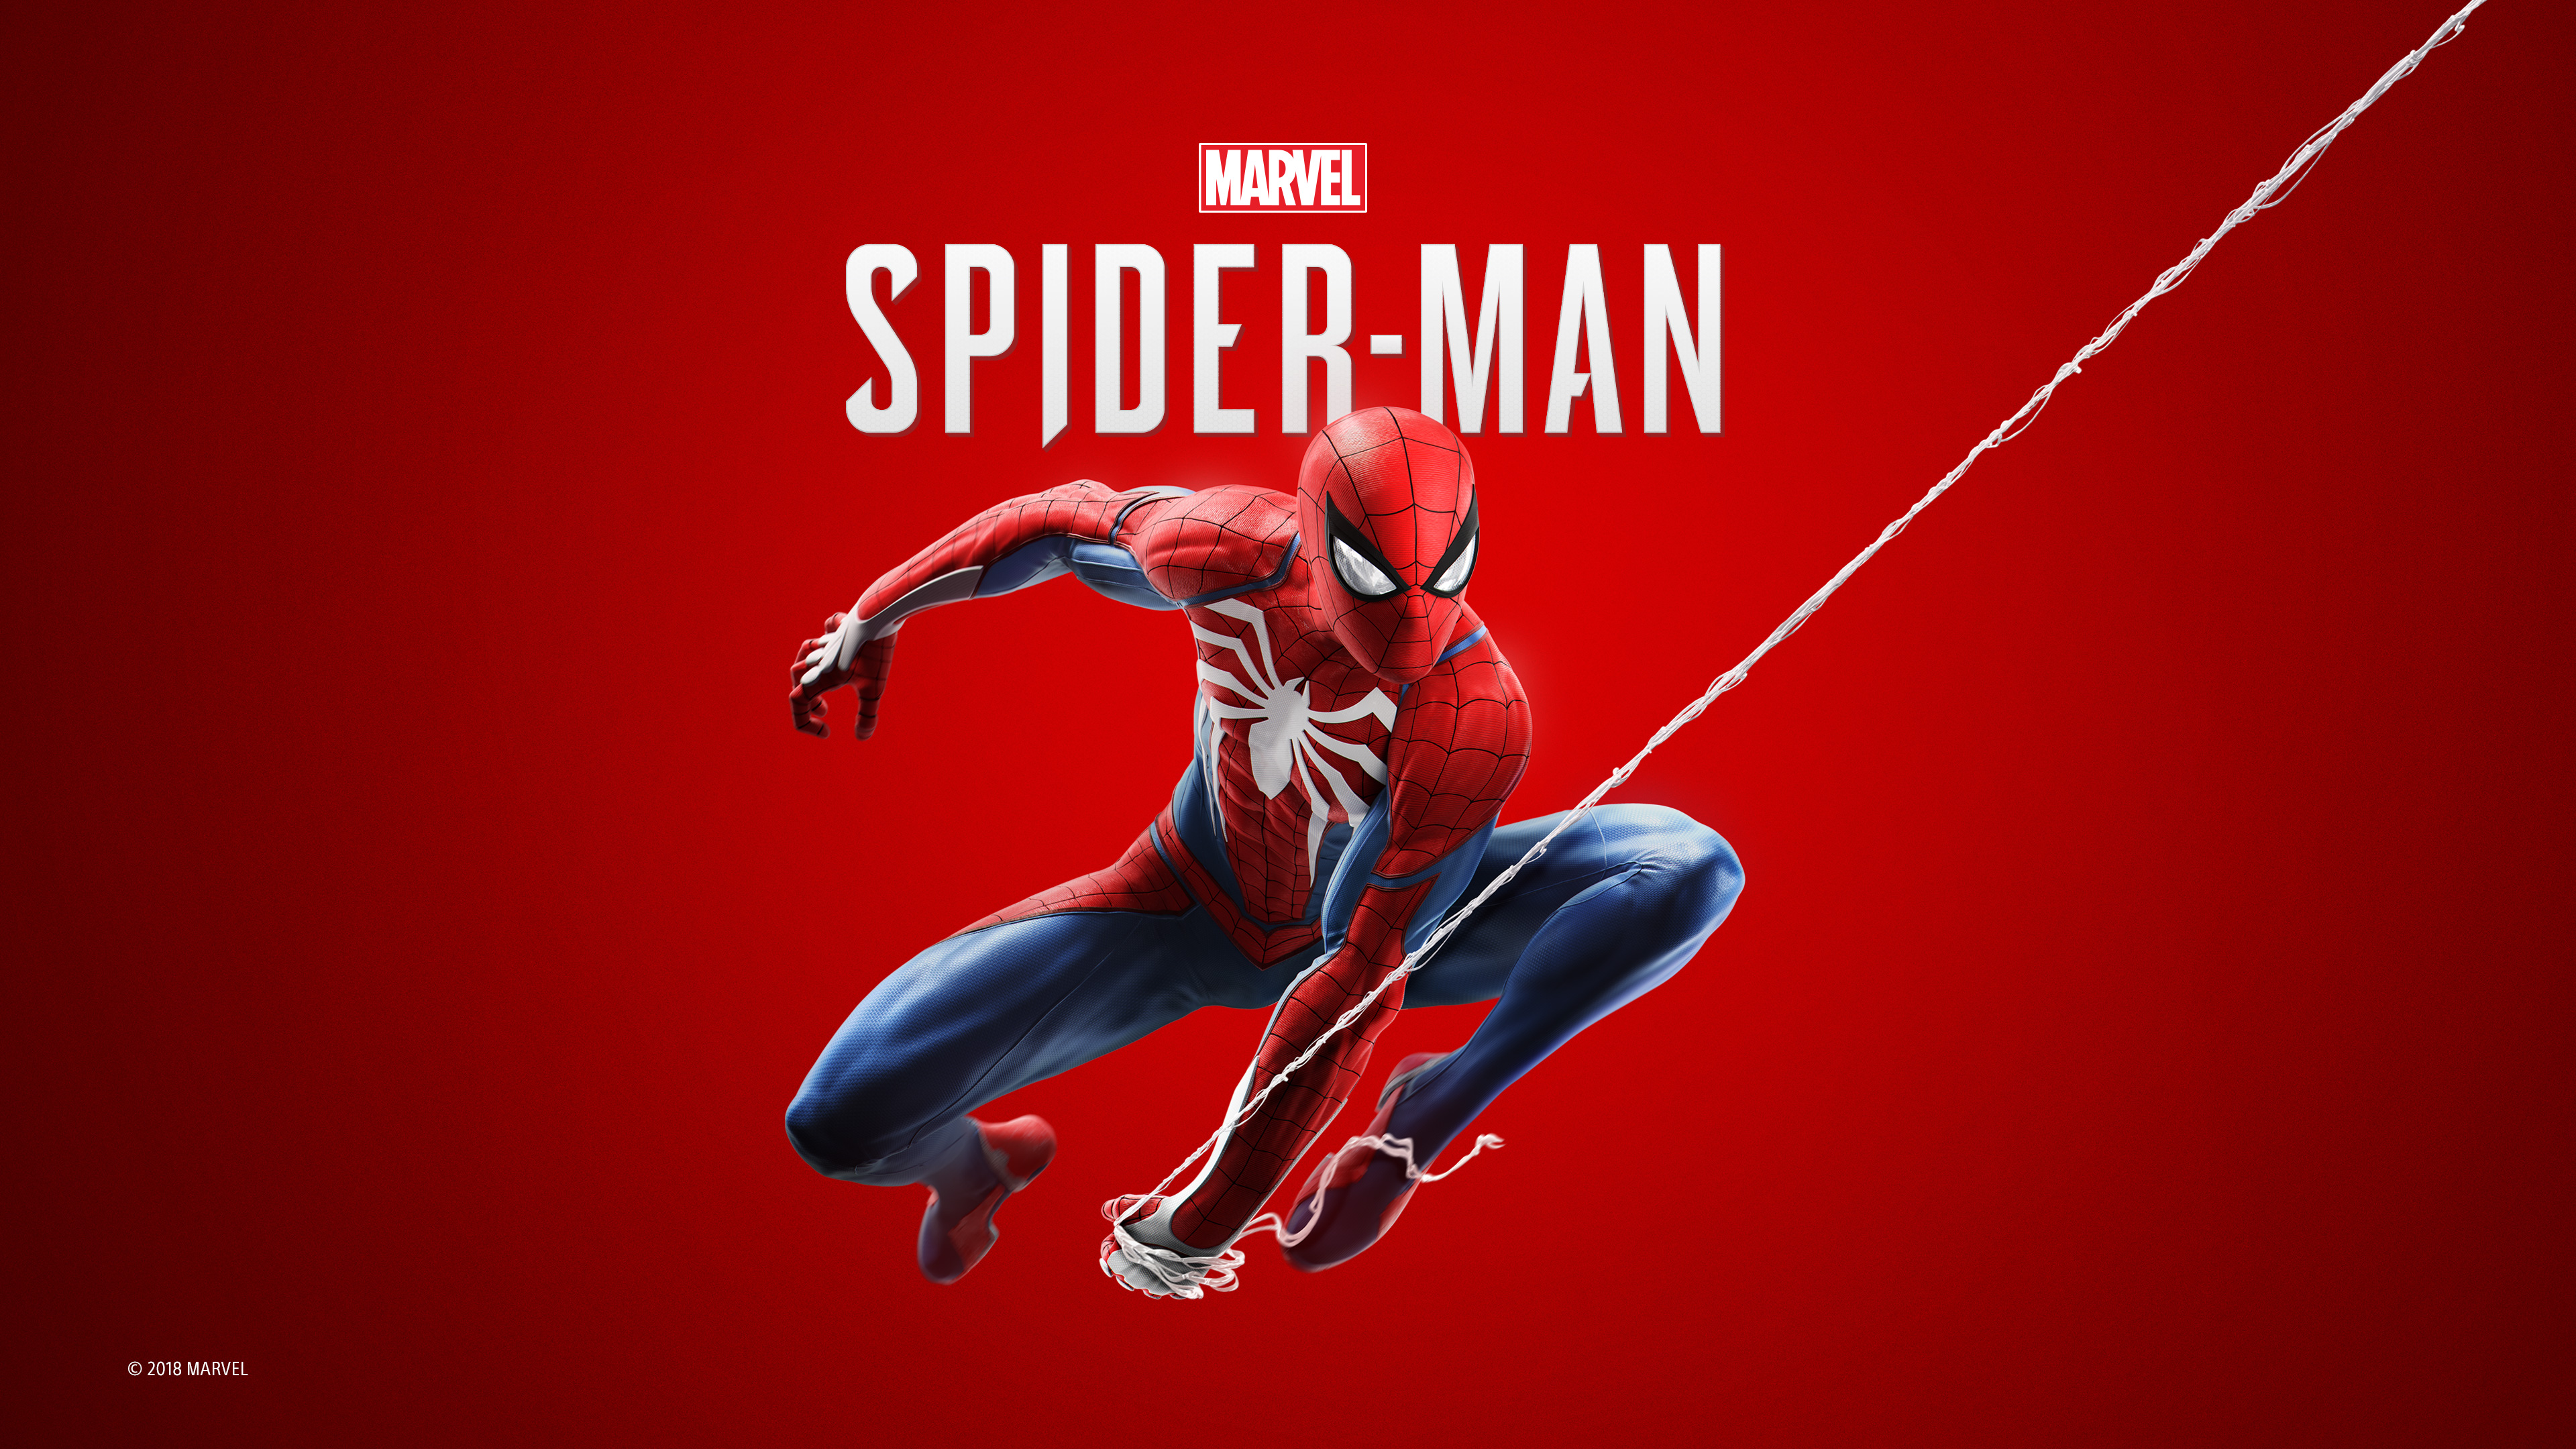 spiderman 2018 game 4k, hd games, 4k wallpapers, images, backgrounds